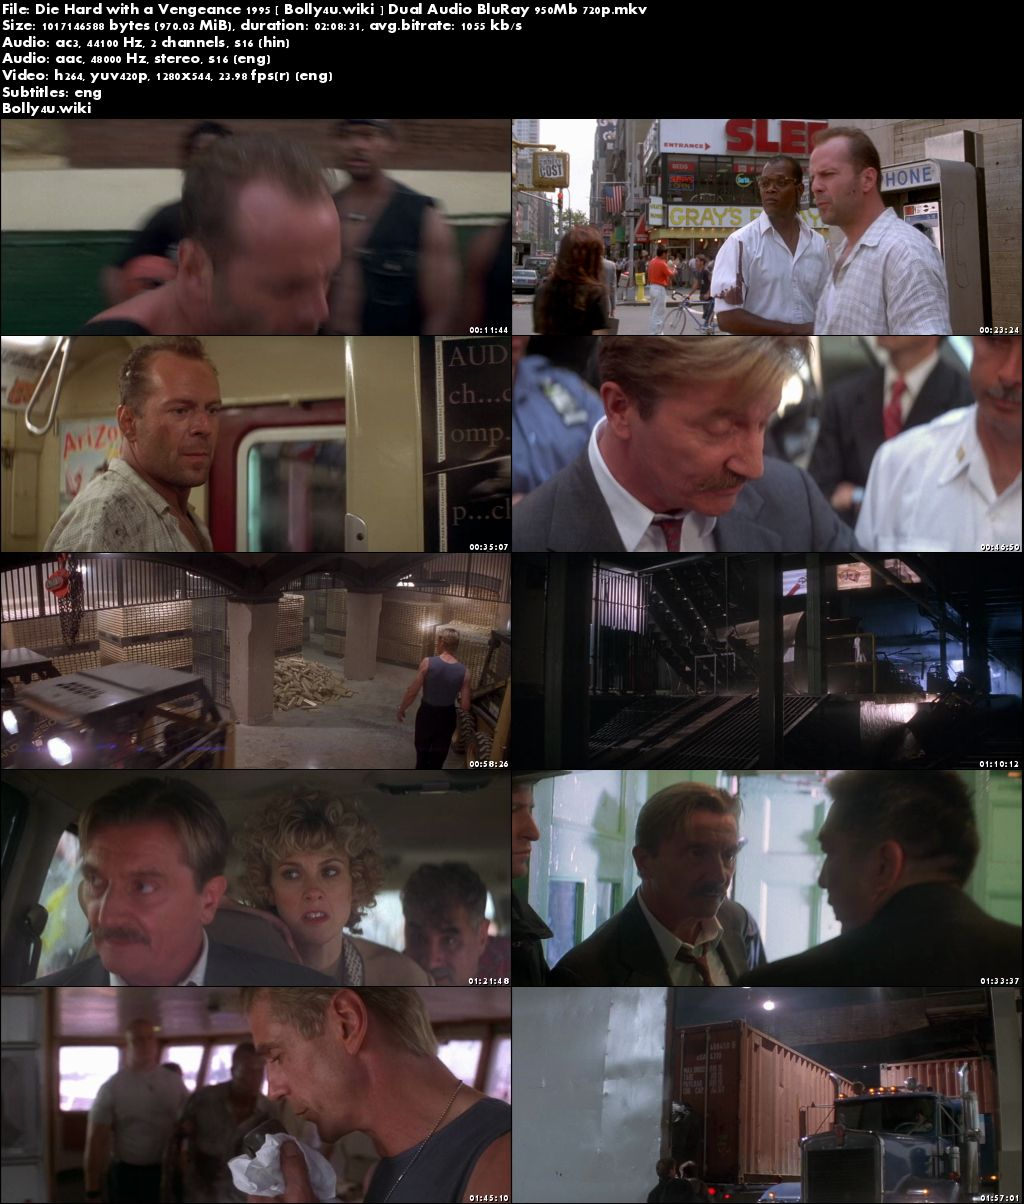 Die Hard with a Vengeance 1995 BRRip 400Mb Hindi Dual Audio 480p Download